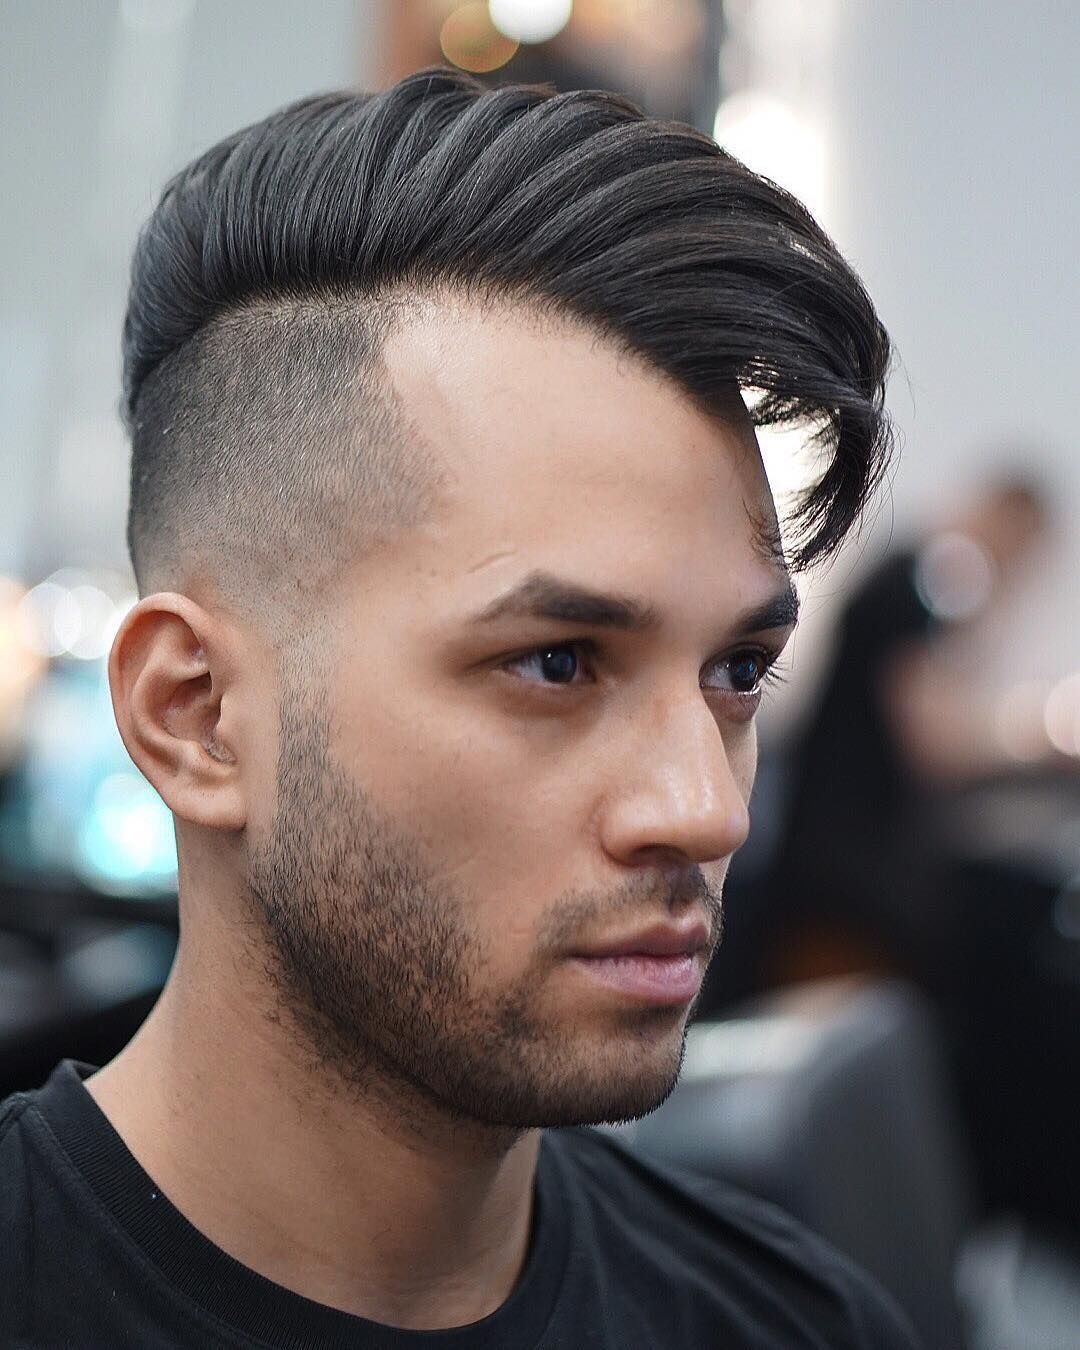 Best mens haircuts 2018 best mens hairstyles  menshairstyles  mens hairstyles